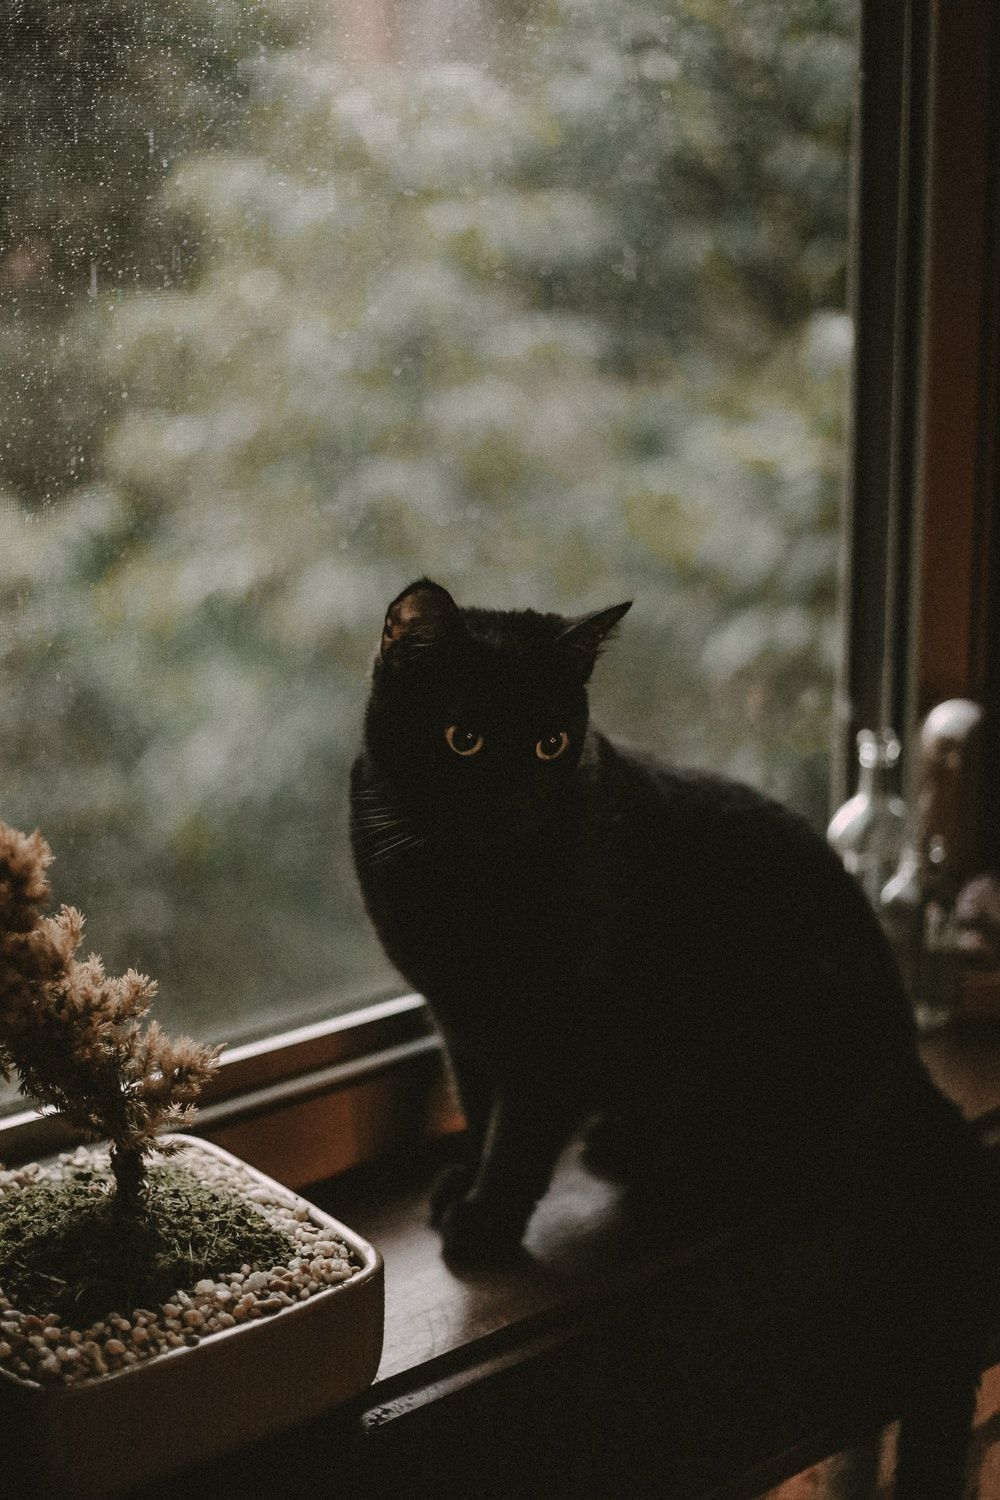 aesthetic cat witch cats cute phone steampunk wallpapers storm evening kittens could backgrounds dark wallpaperaccess maureen2musings forest beauty things better